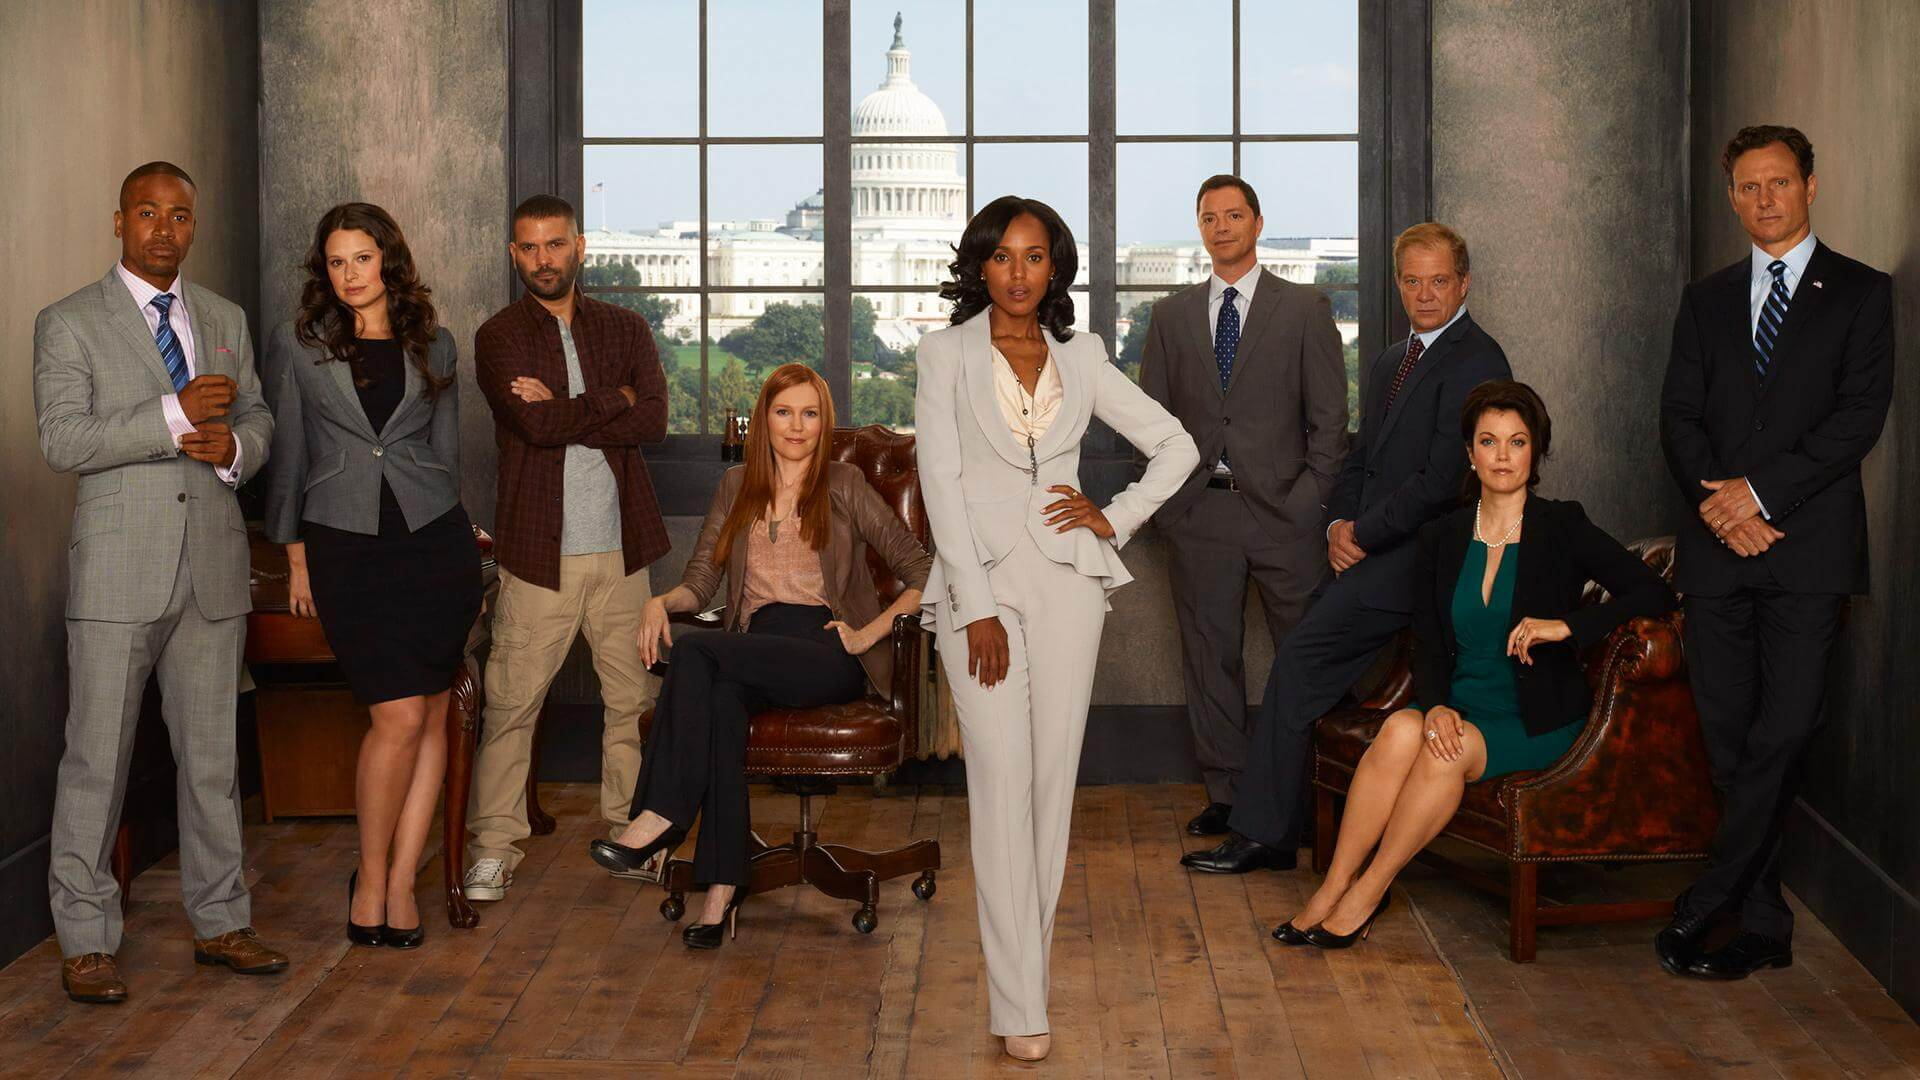 scandal-tv-series-hd-wallpapern-3-1397911 Scandal